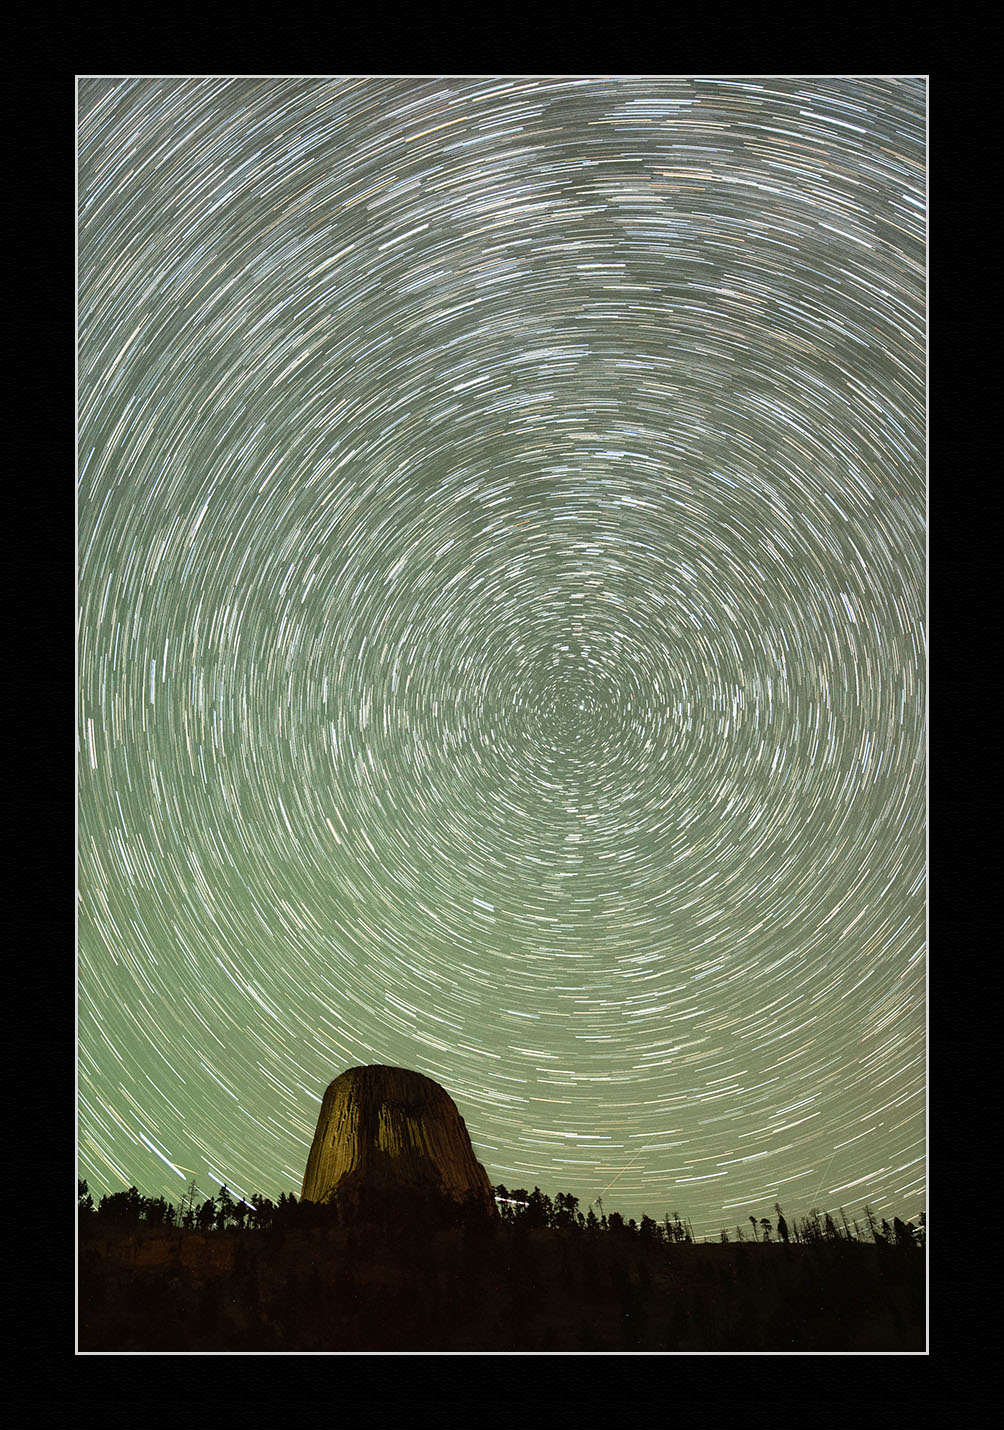 Stars at Devils Tower.  Nikon D750  with a  Zeiss 15mm Distagon f/2.8  lens. Ten stacked frames, each shot at 150 seconds, f/2.8, ISO 1600 (1,500 seconds total).